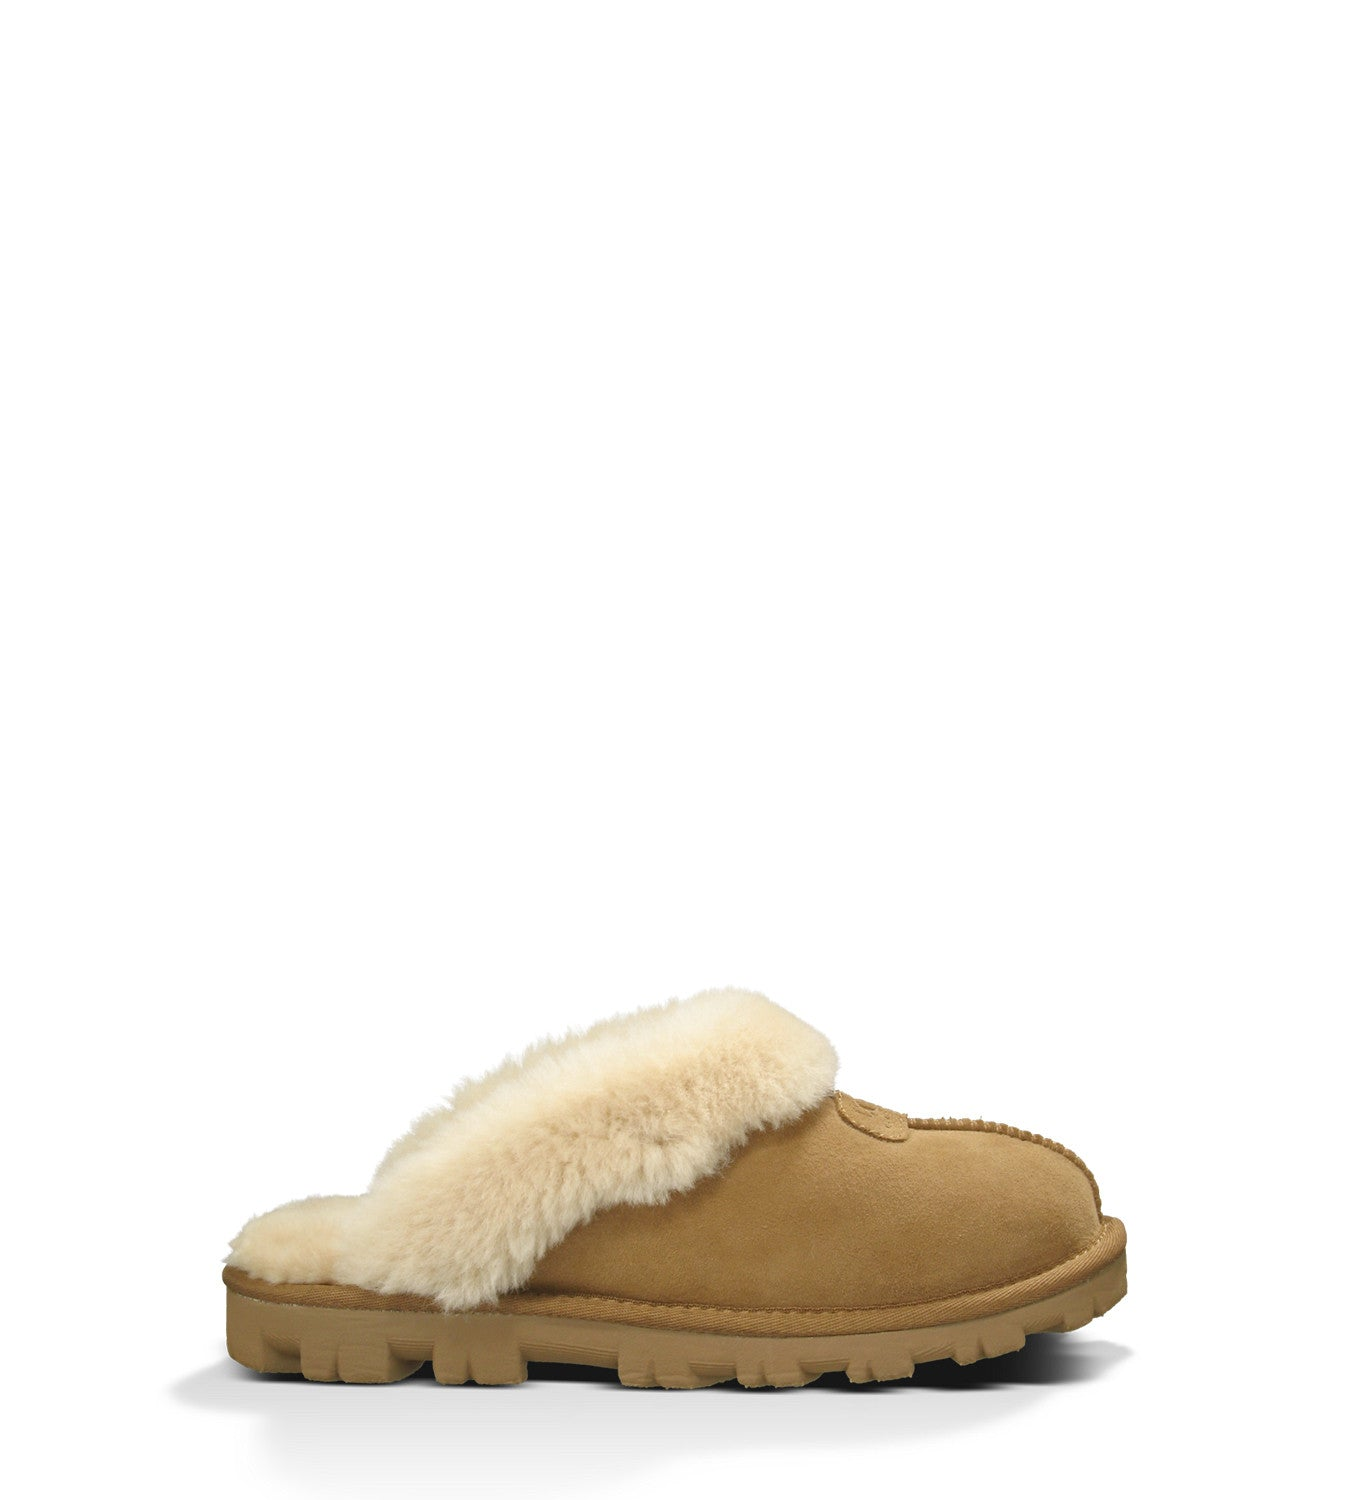 UGG Australia Women Coquette in Chestnut